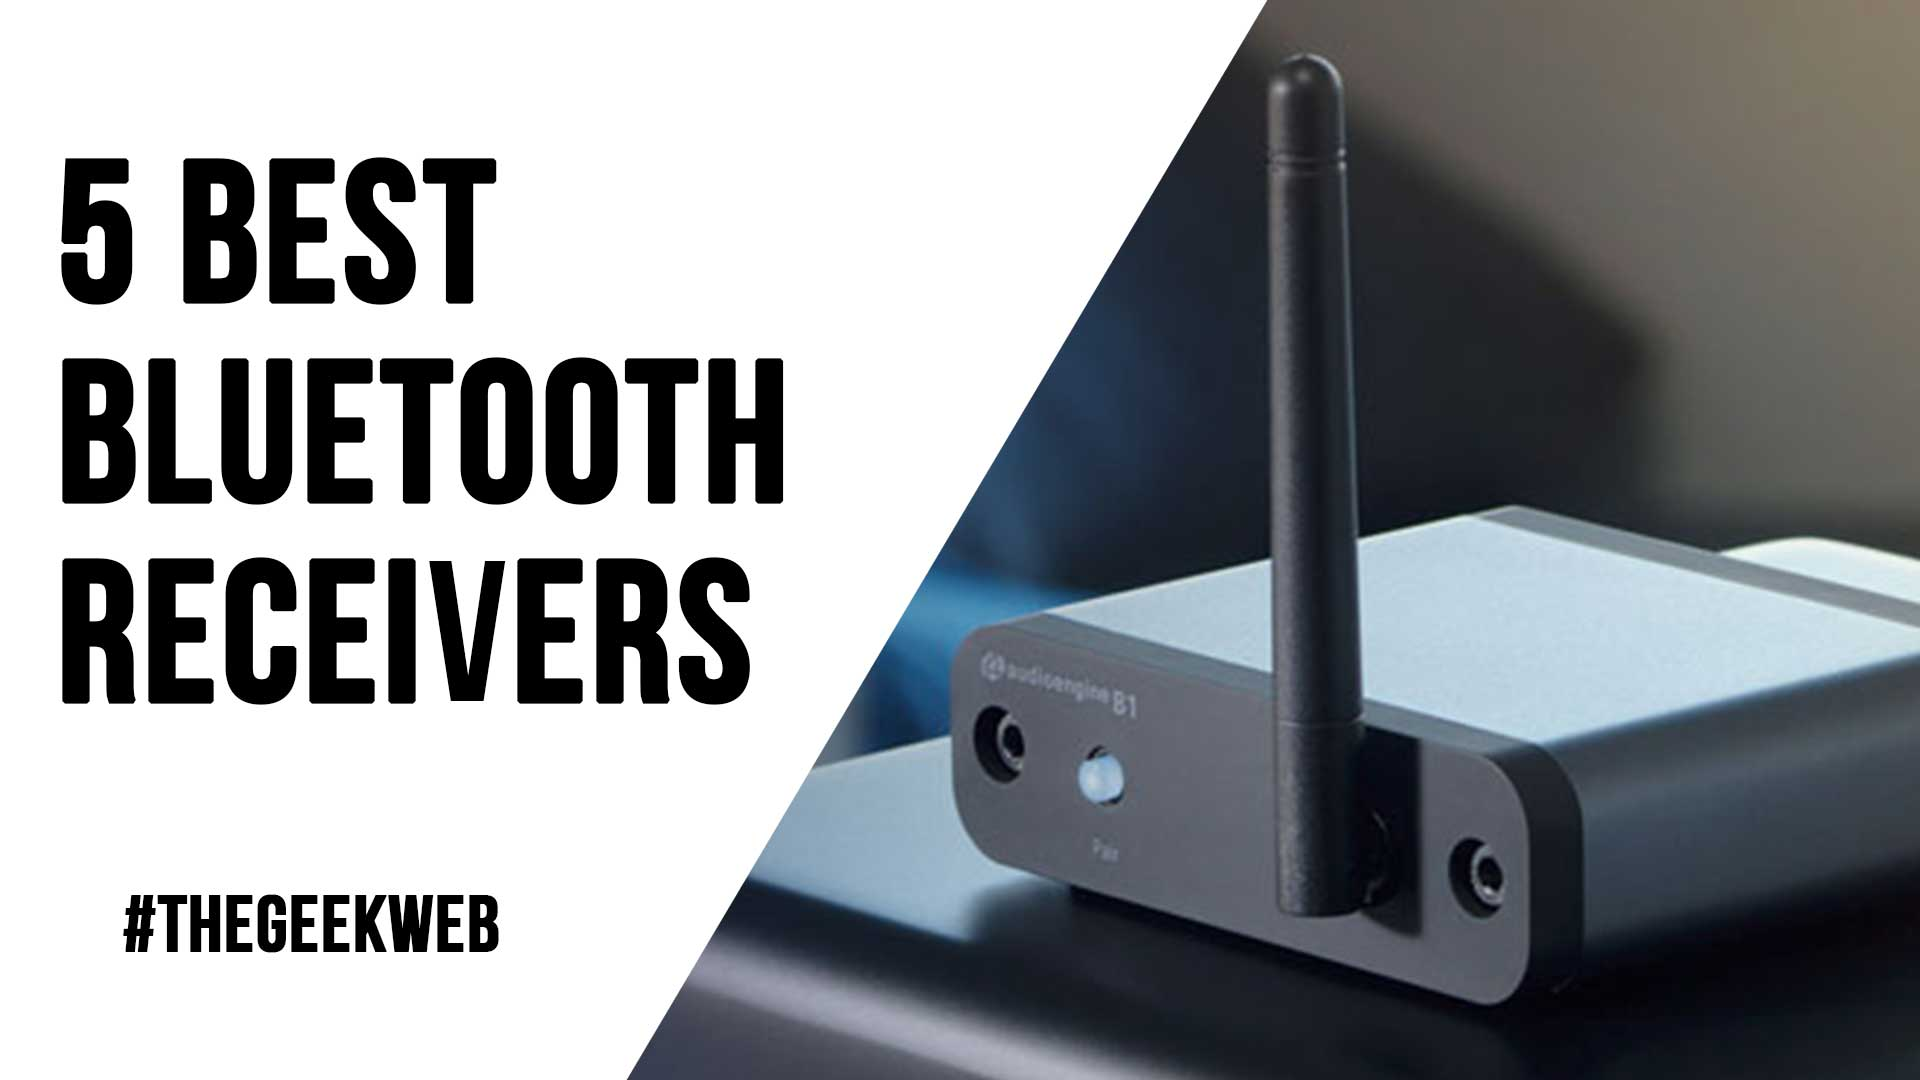 5 Best Bluetooth Receivers in 2020